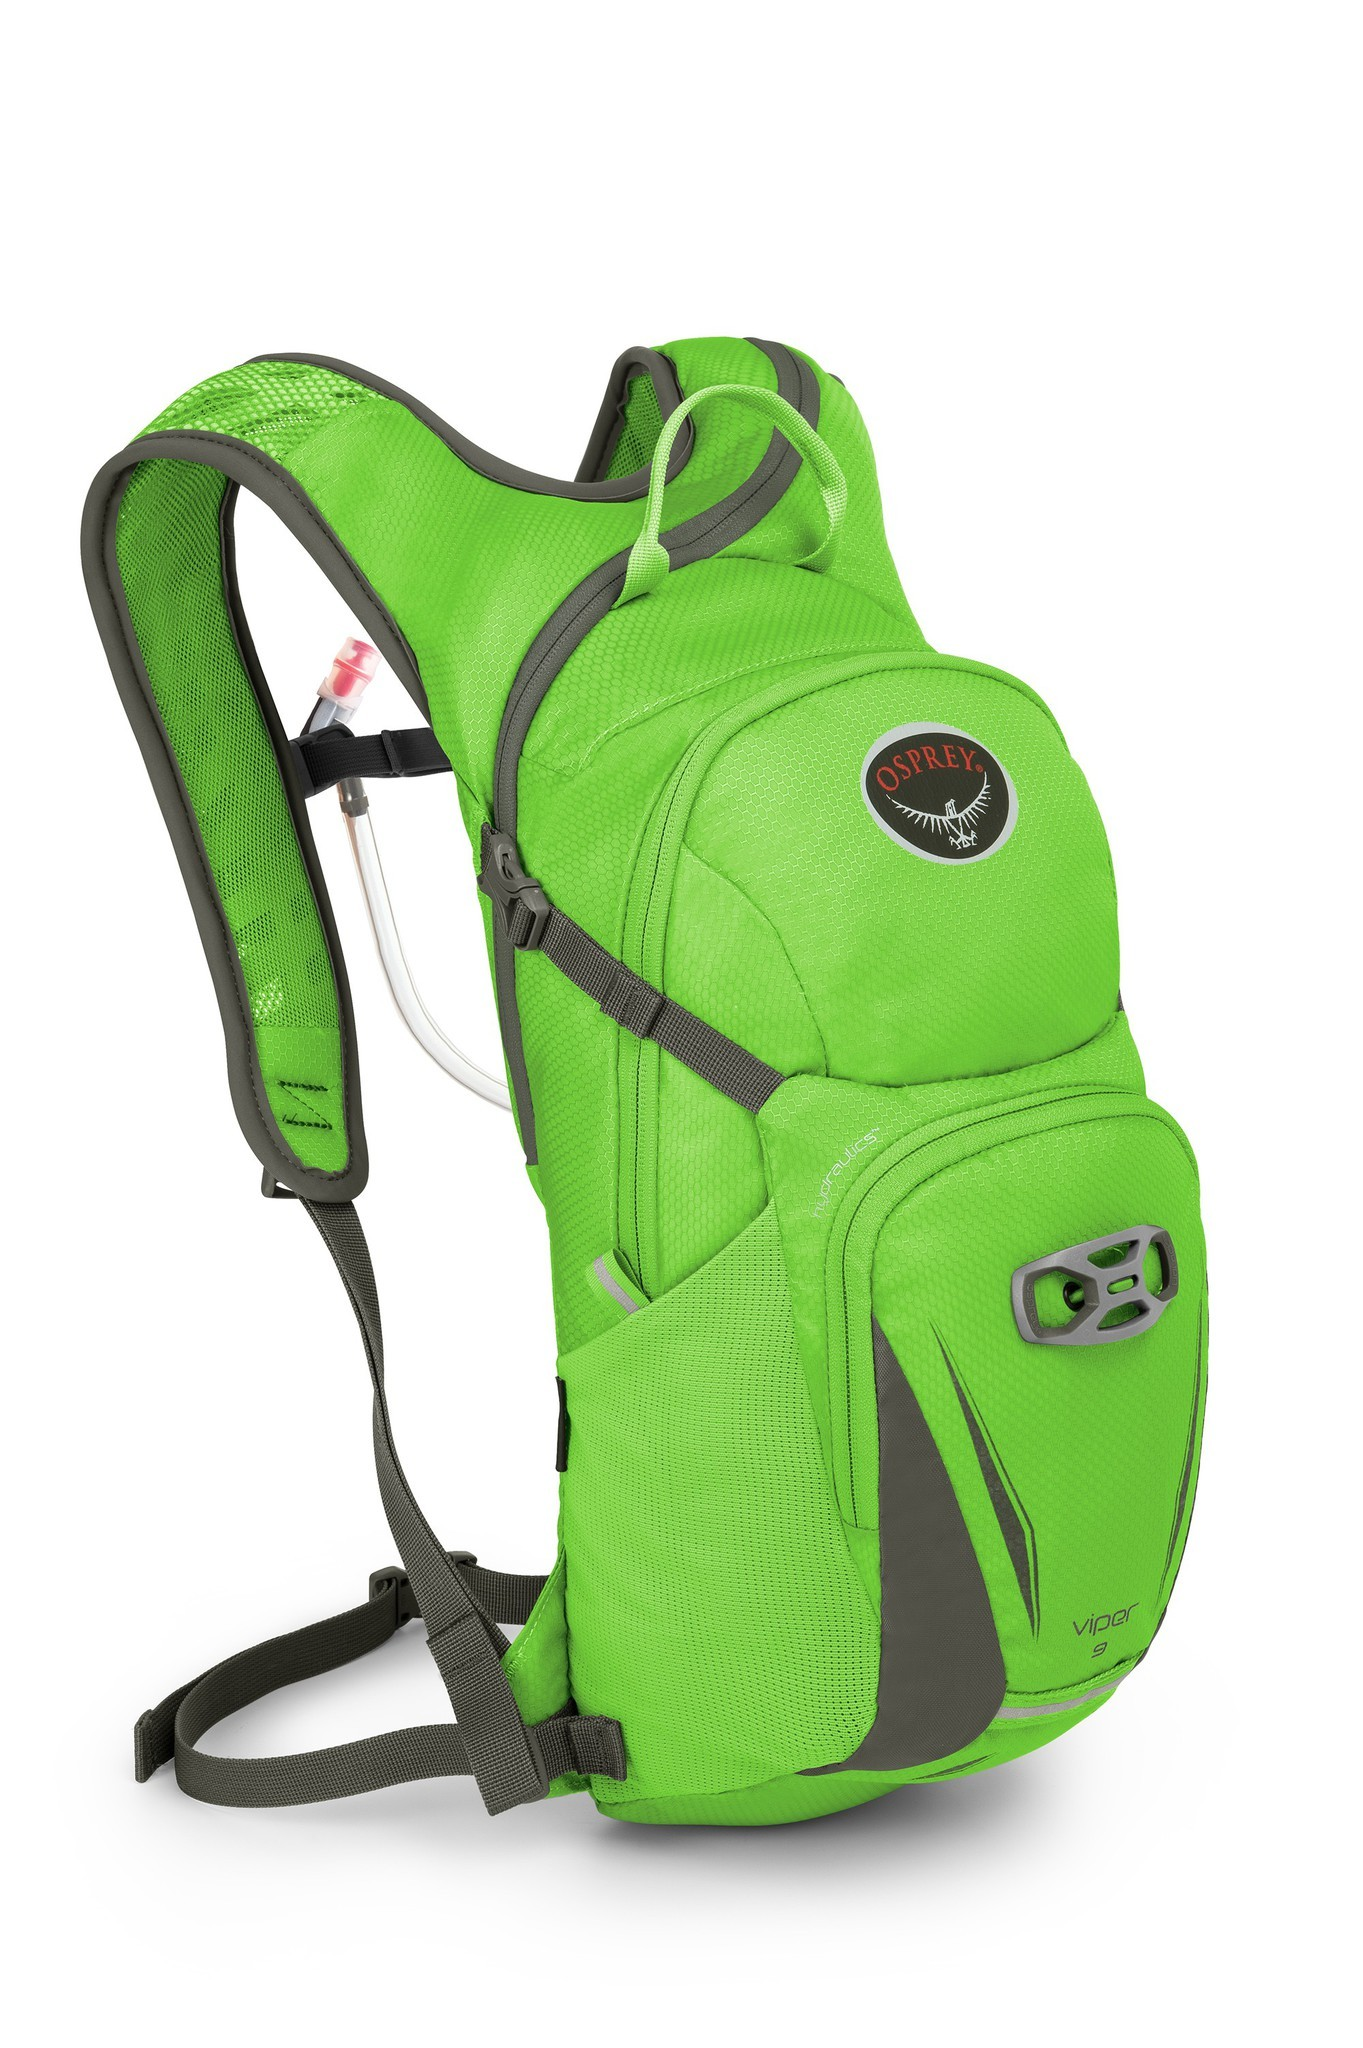 Велорюкзаки Велорюкзак Osprey Viper 9 New Bright green viper_9_wasabi_green_2000x3006px_1.jpg